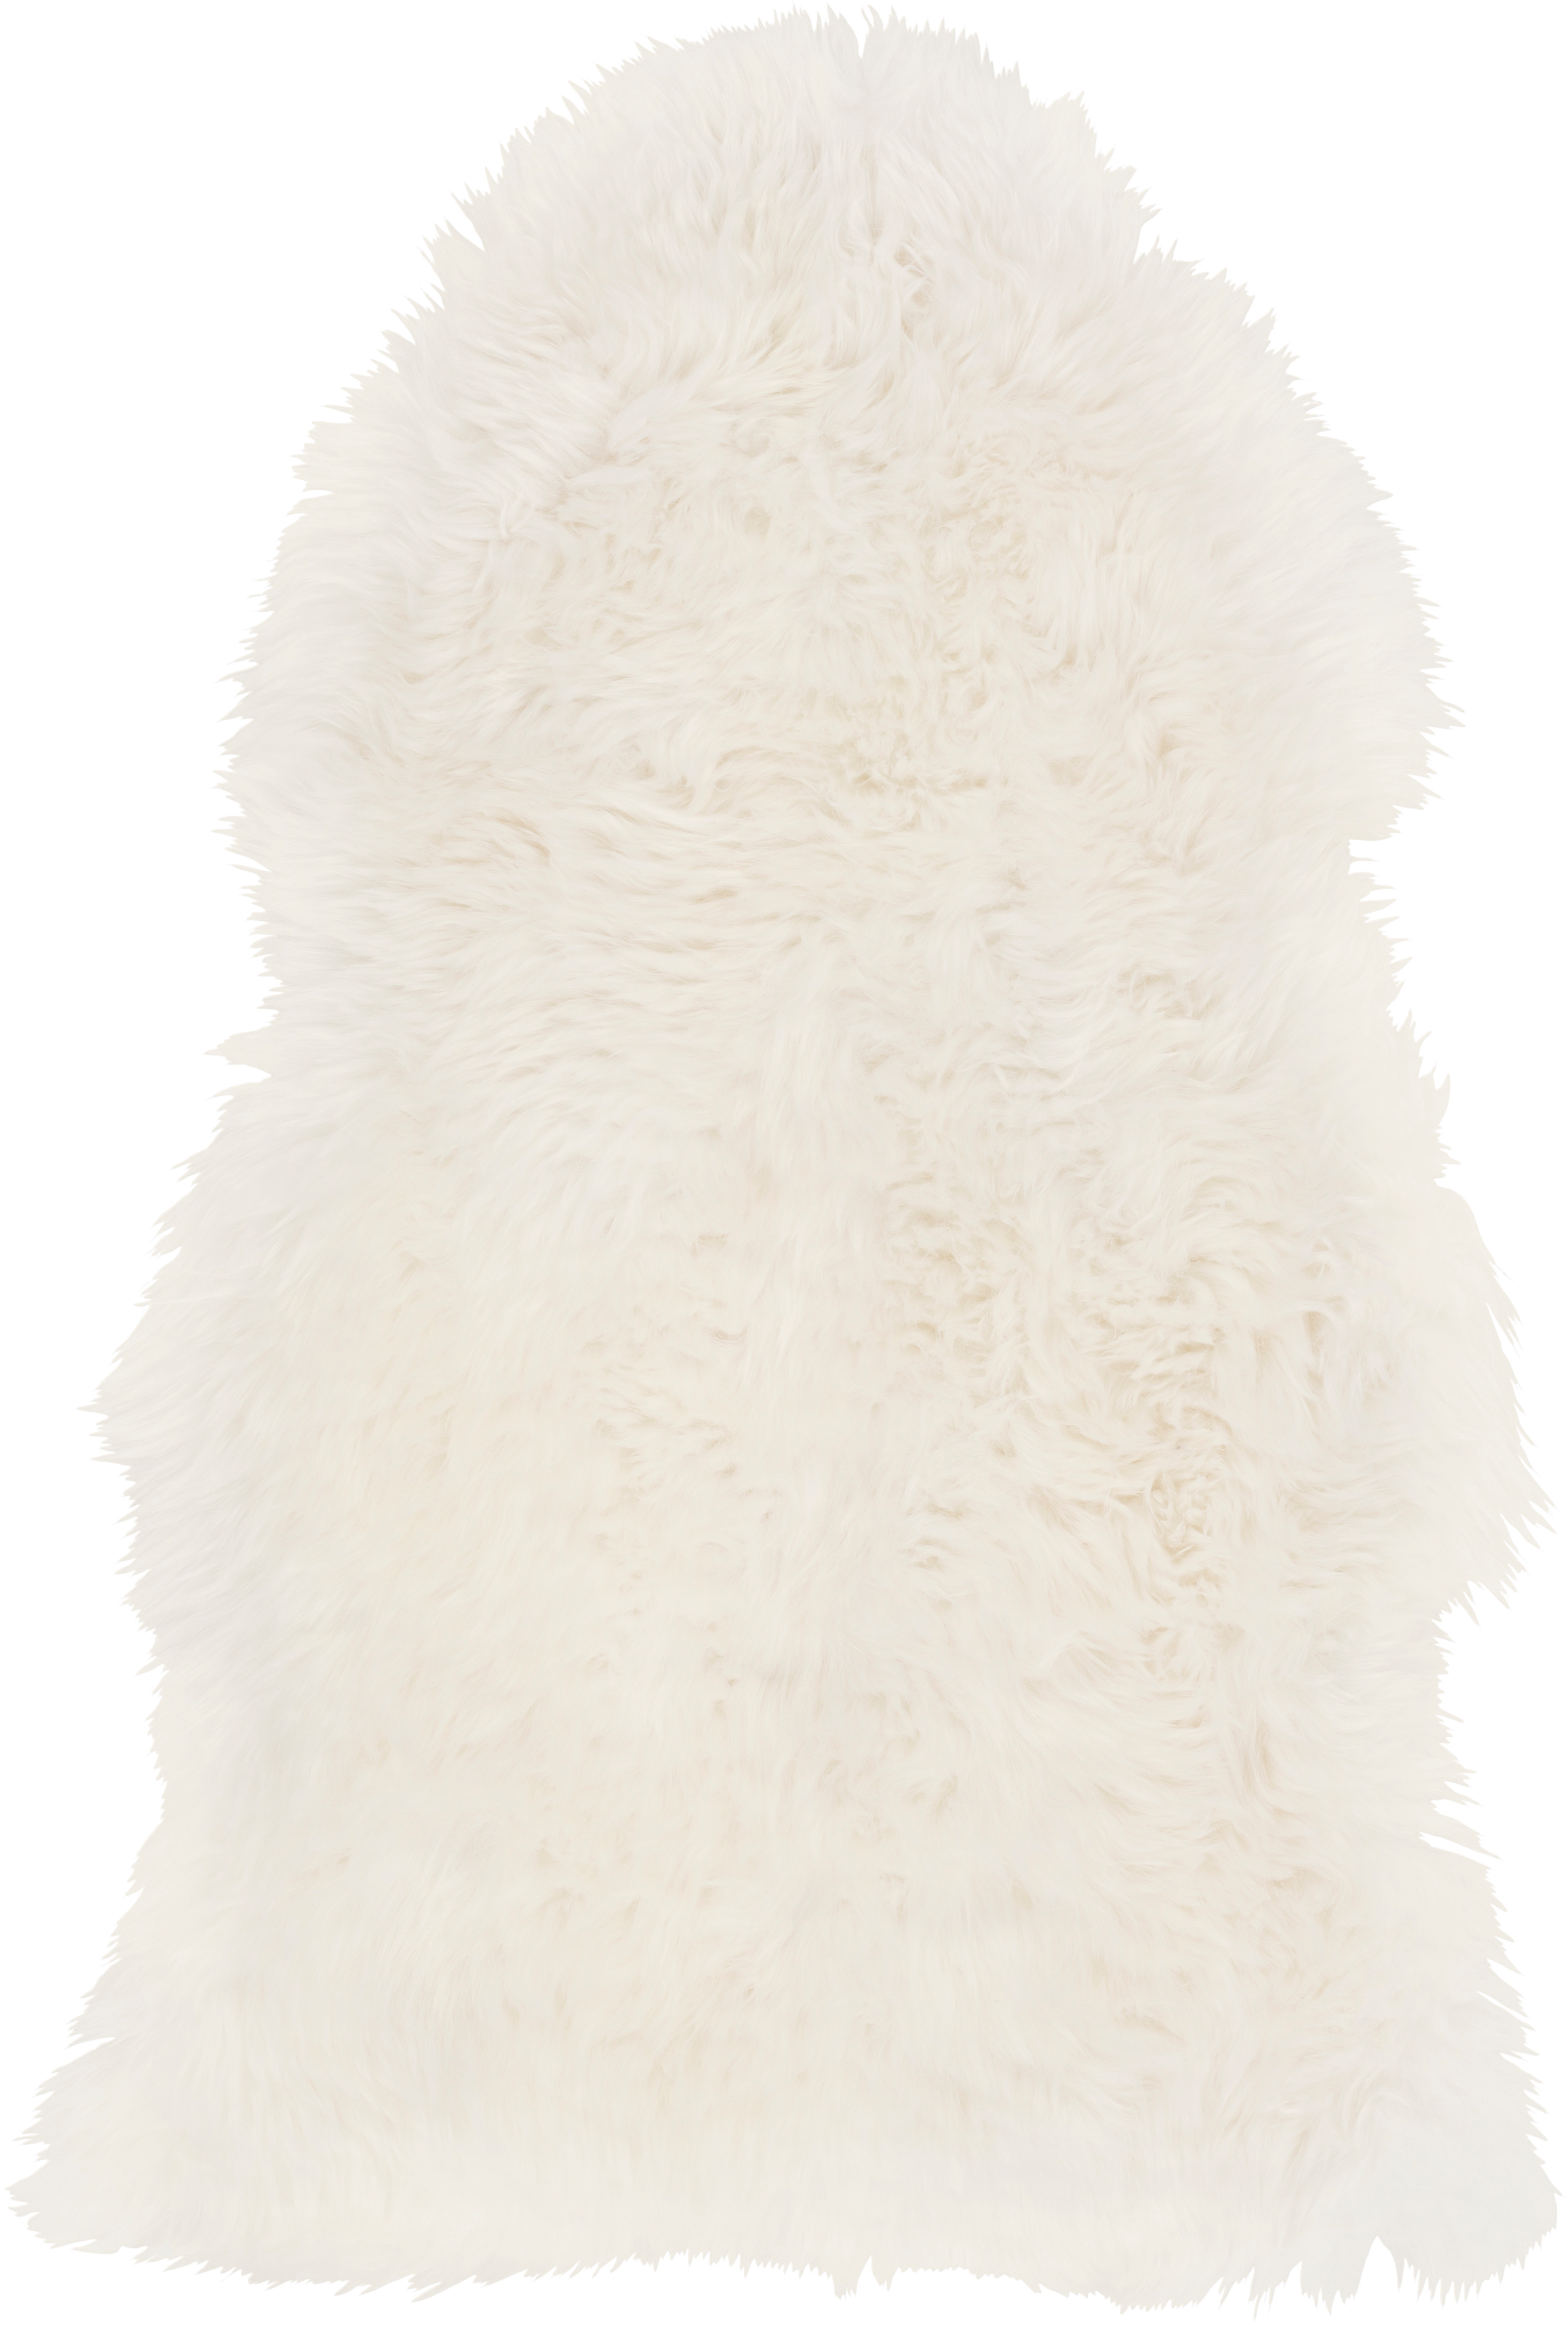 Surya Sheepskin 4' X 6' Rectangle Area Rugs SHS9600-46